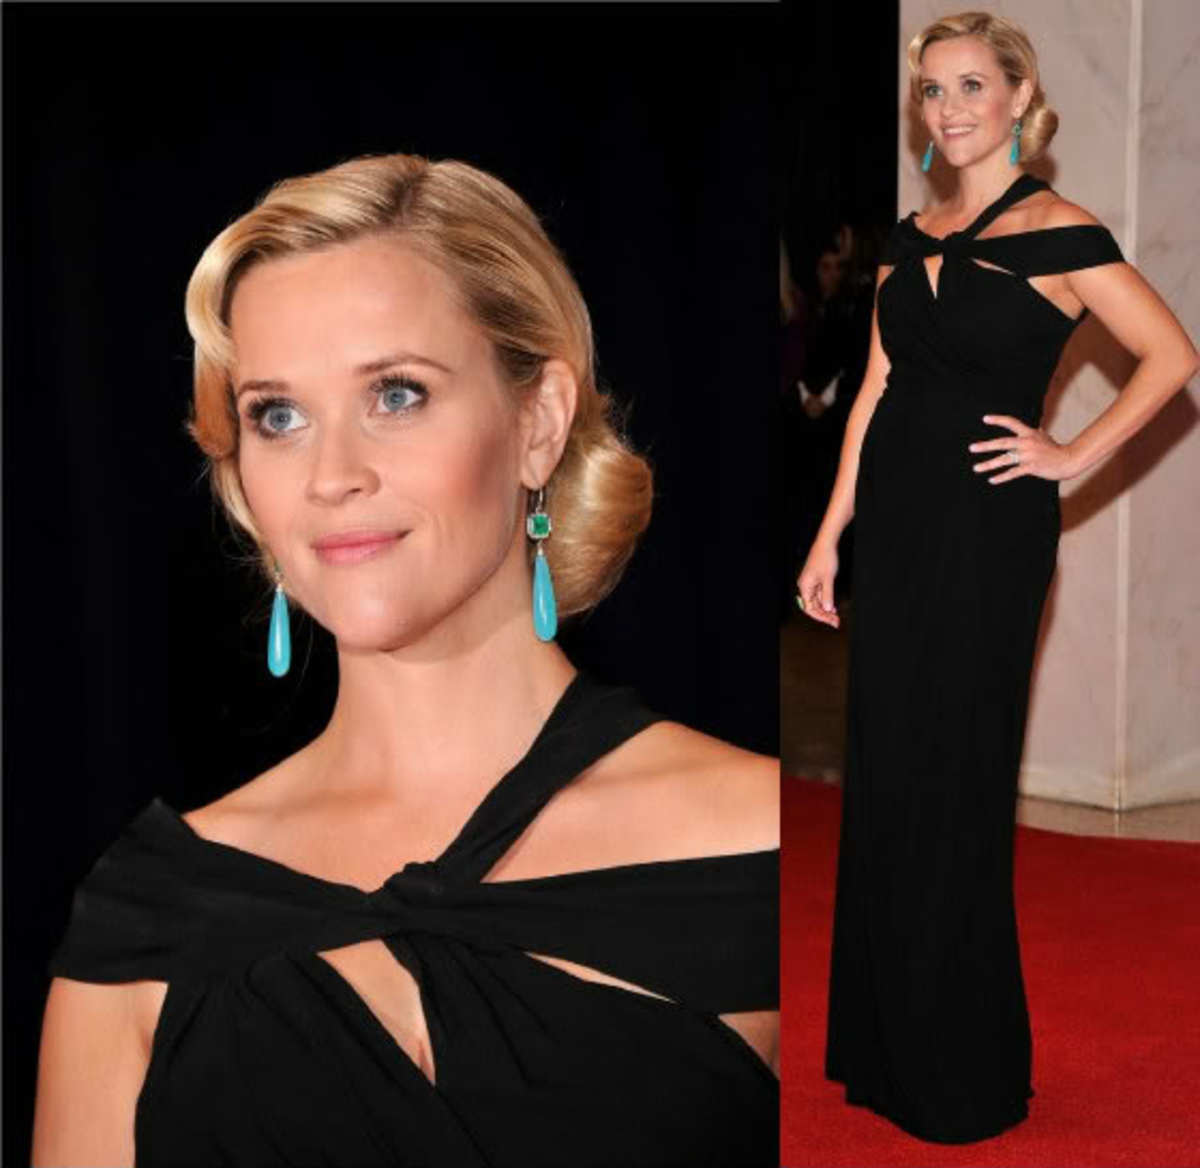 Reese Witherspoon at the White House Correspondants Dinner in Monique Lhuillier & Turquois Earrings